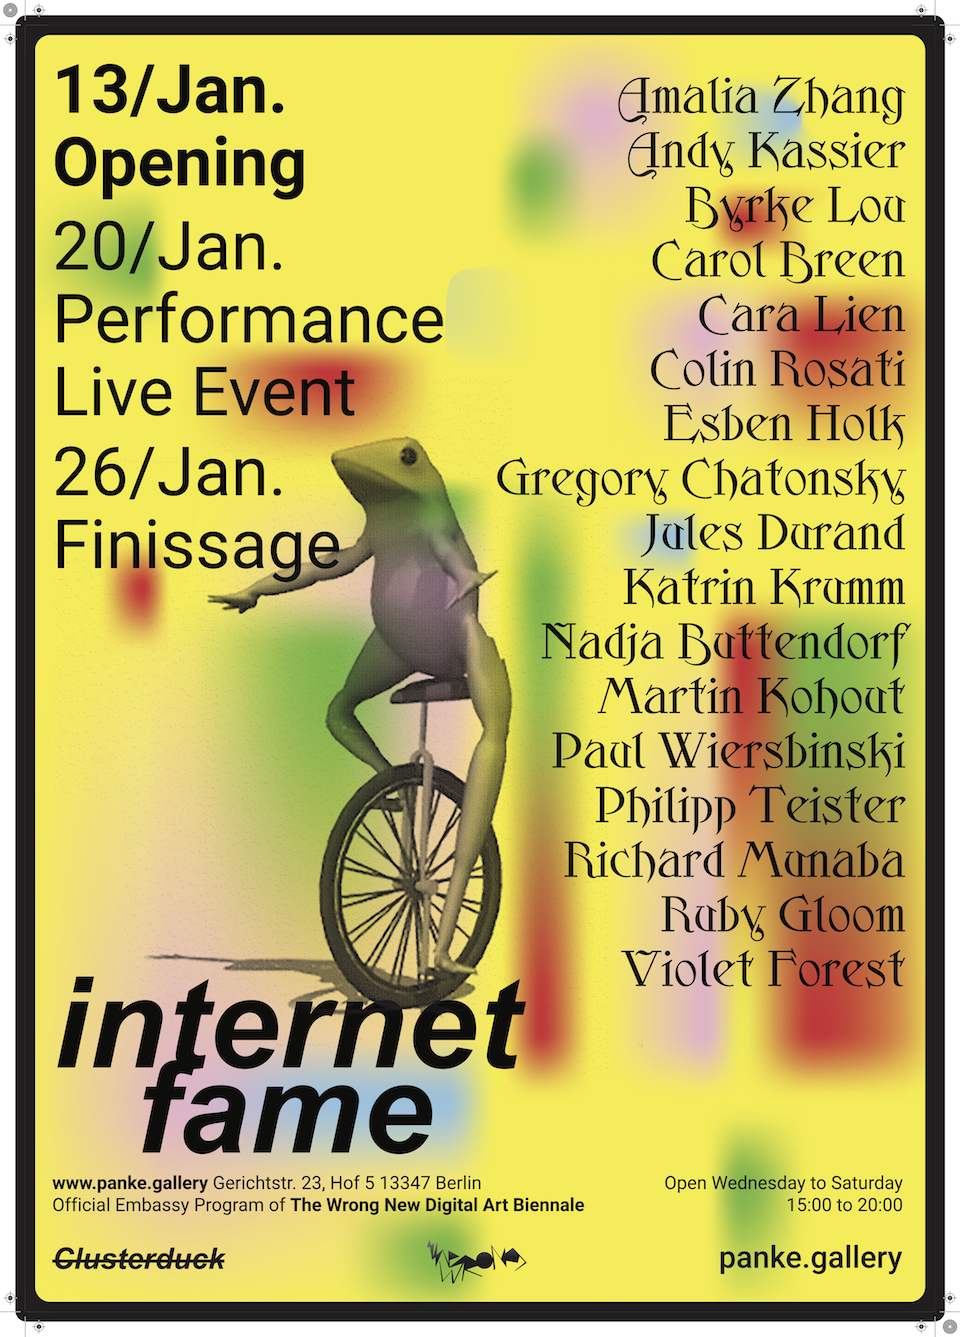 INTERNET FAME | group show @panke.gallery